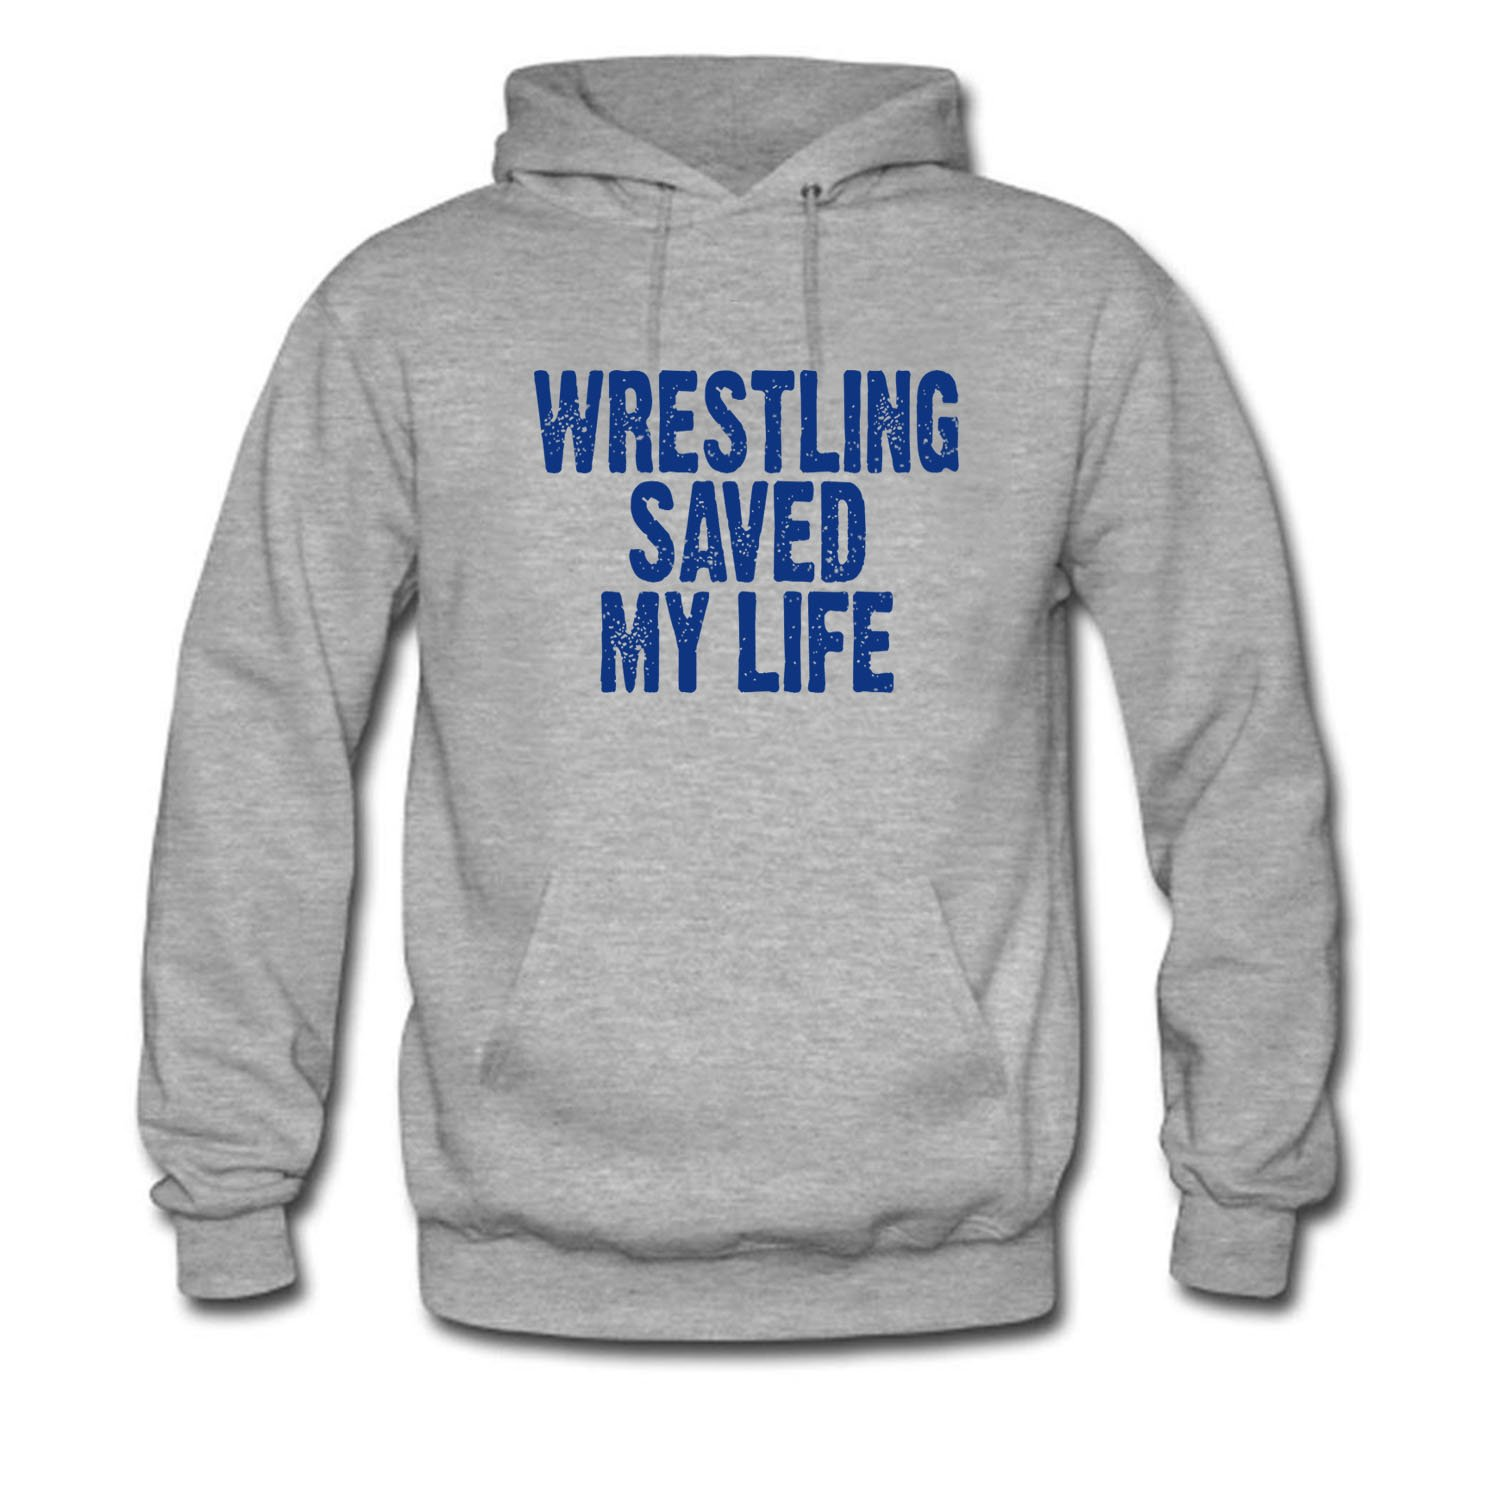 RUIJIE Men's Wrestling Saved My Life Long Sleeve Hoodie by RUIJIE